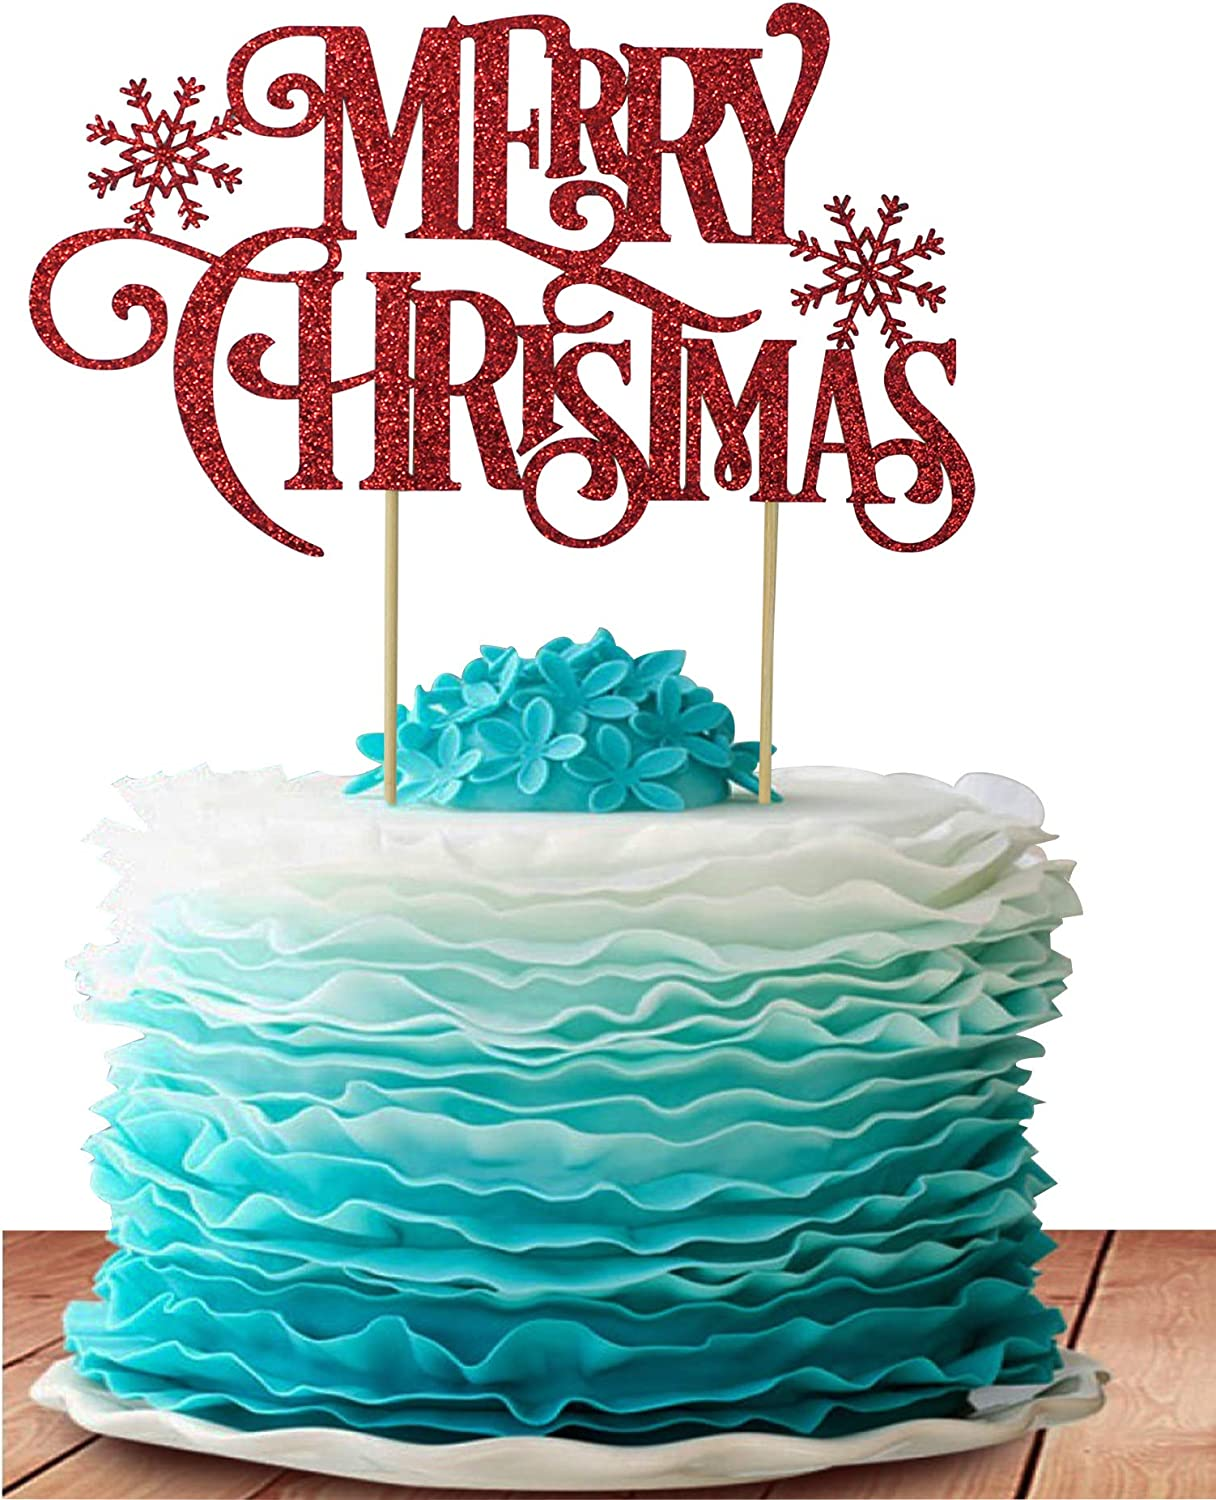 Merry Christmas And Happy New Year Green And Cream 2020 Amazon.com: GrantParty Merry Christmas Cake Topper   Holiday Santa